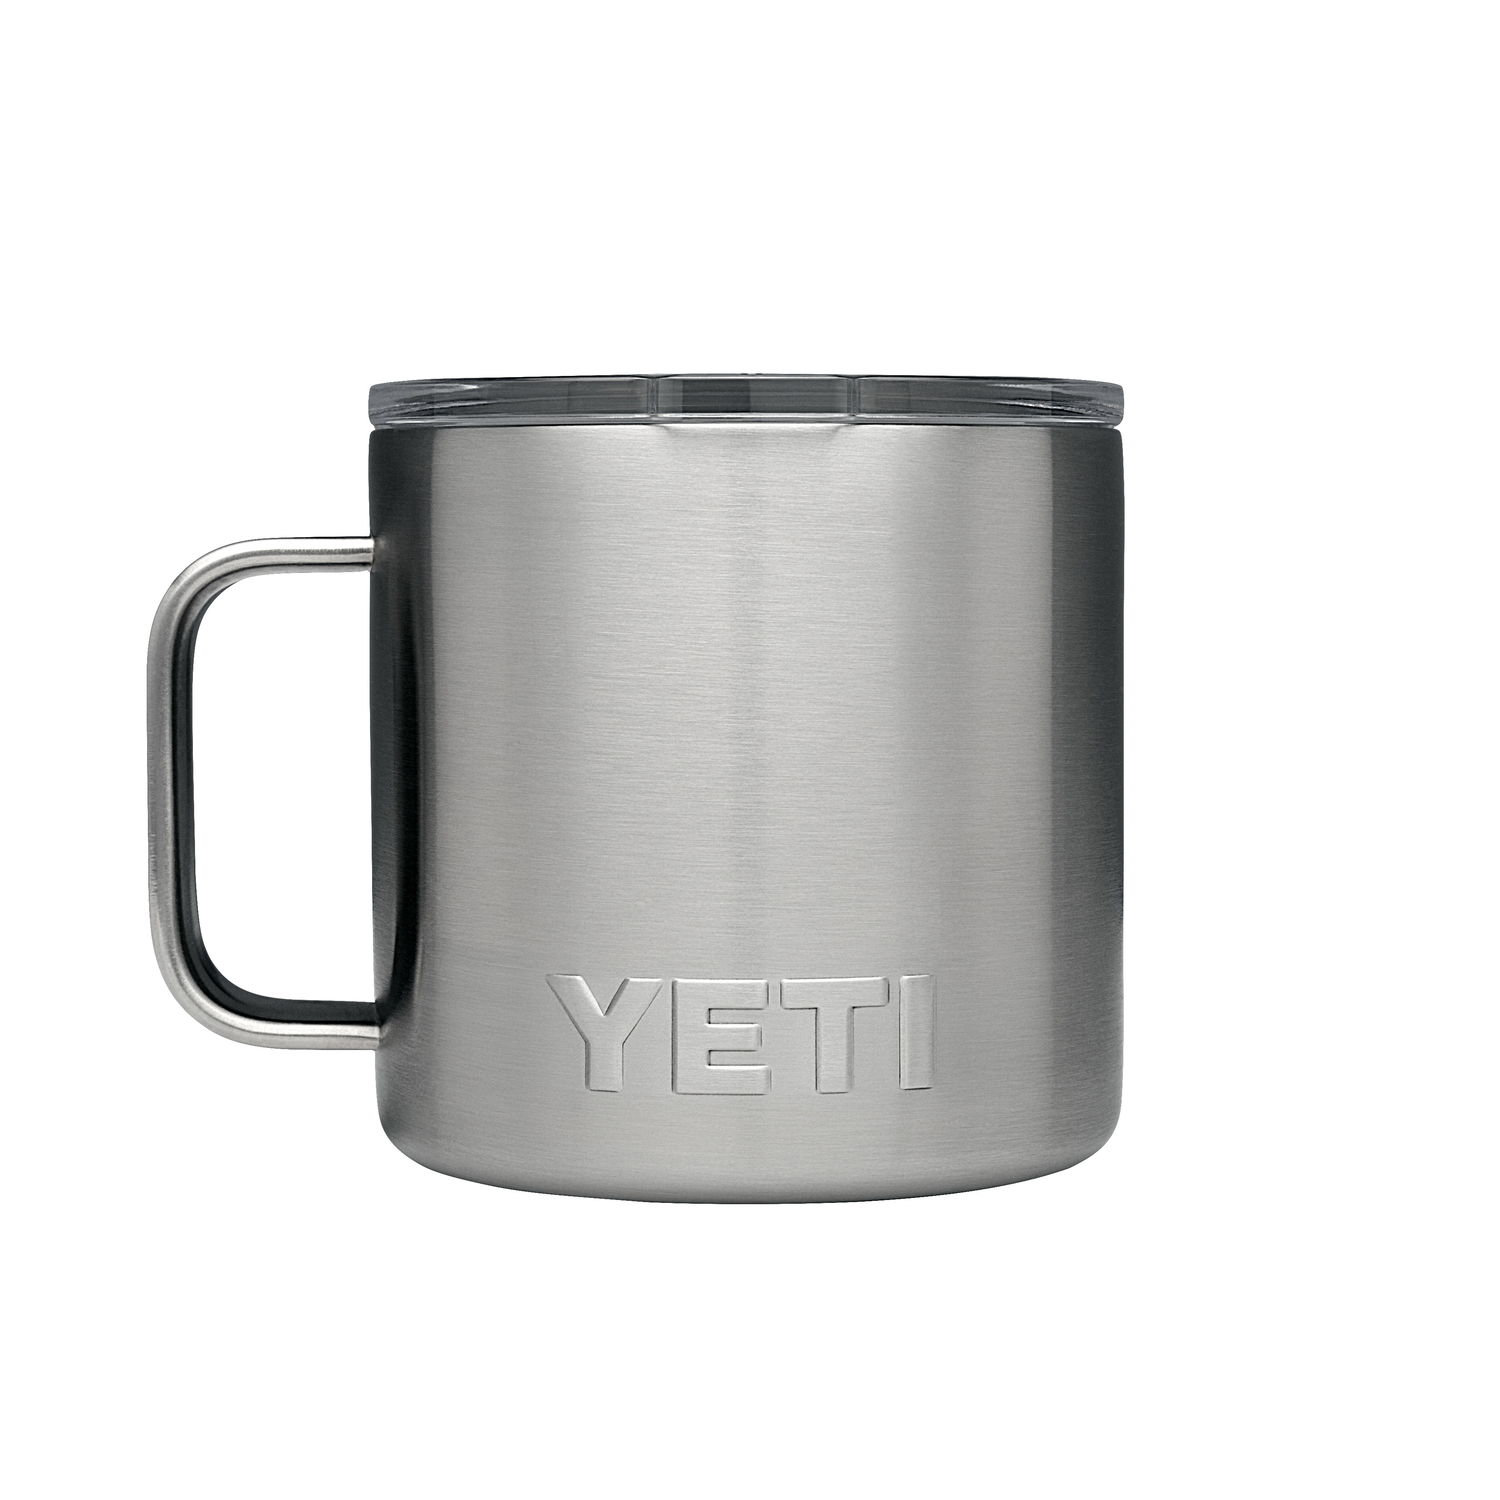 YETI  Rambler  Silver  Stainless Steel  Insulated Mug  14 oz. BPA Free